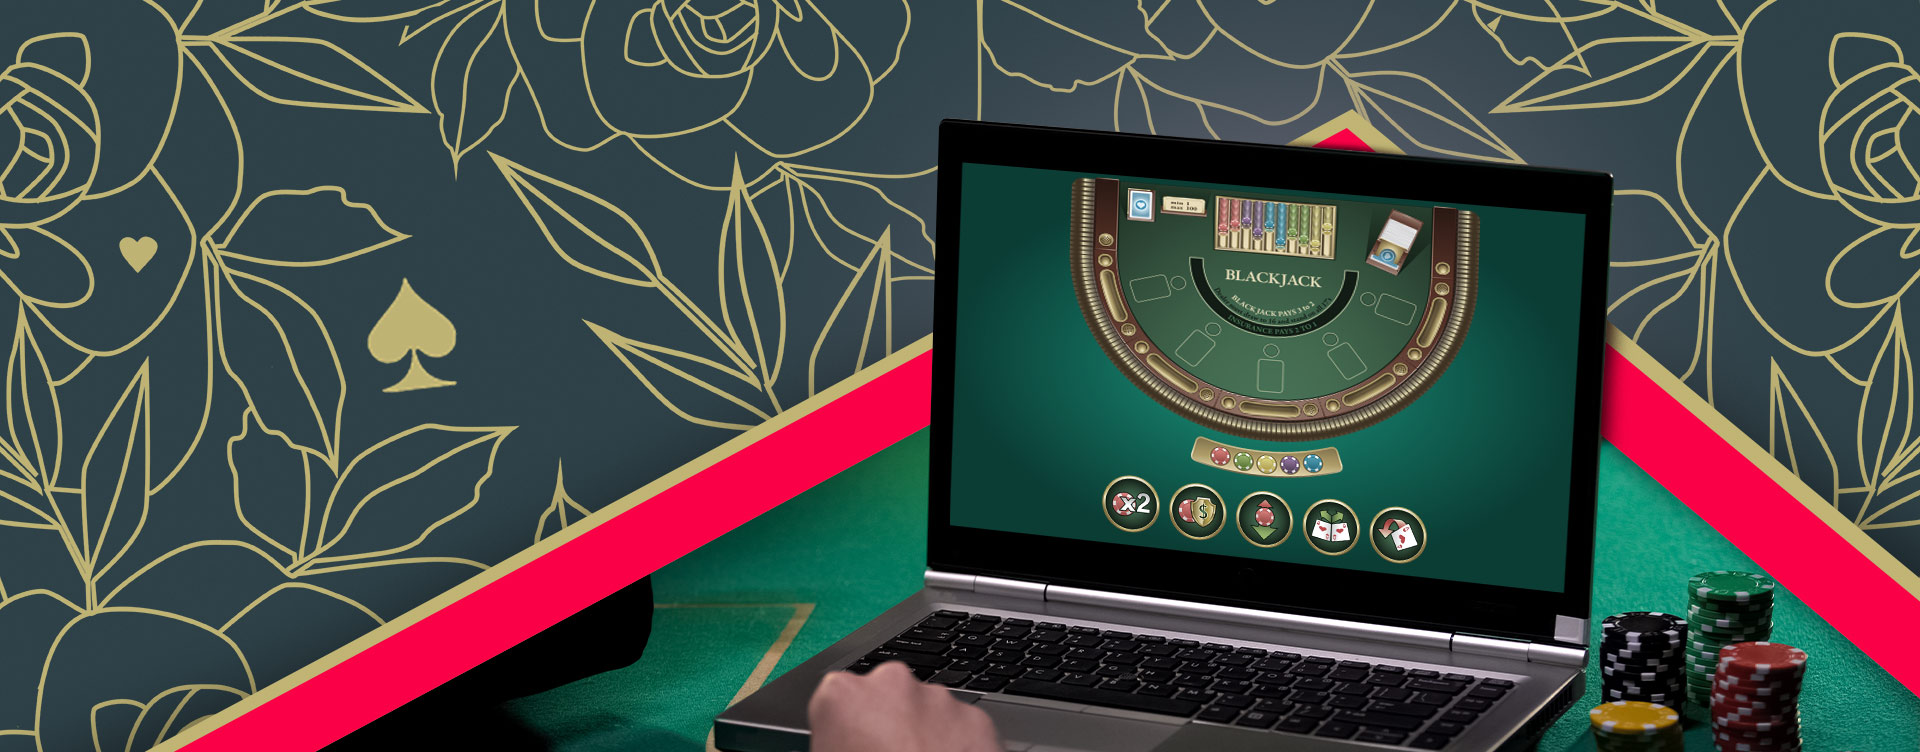 Our 2020 Online Blackjack Guide Gives You Strategy to Win!